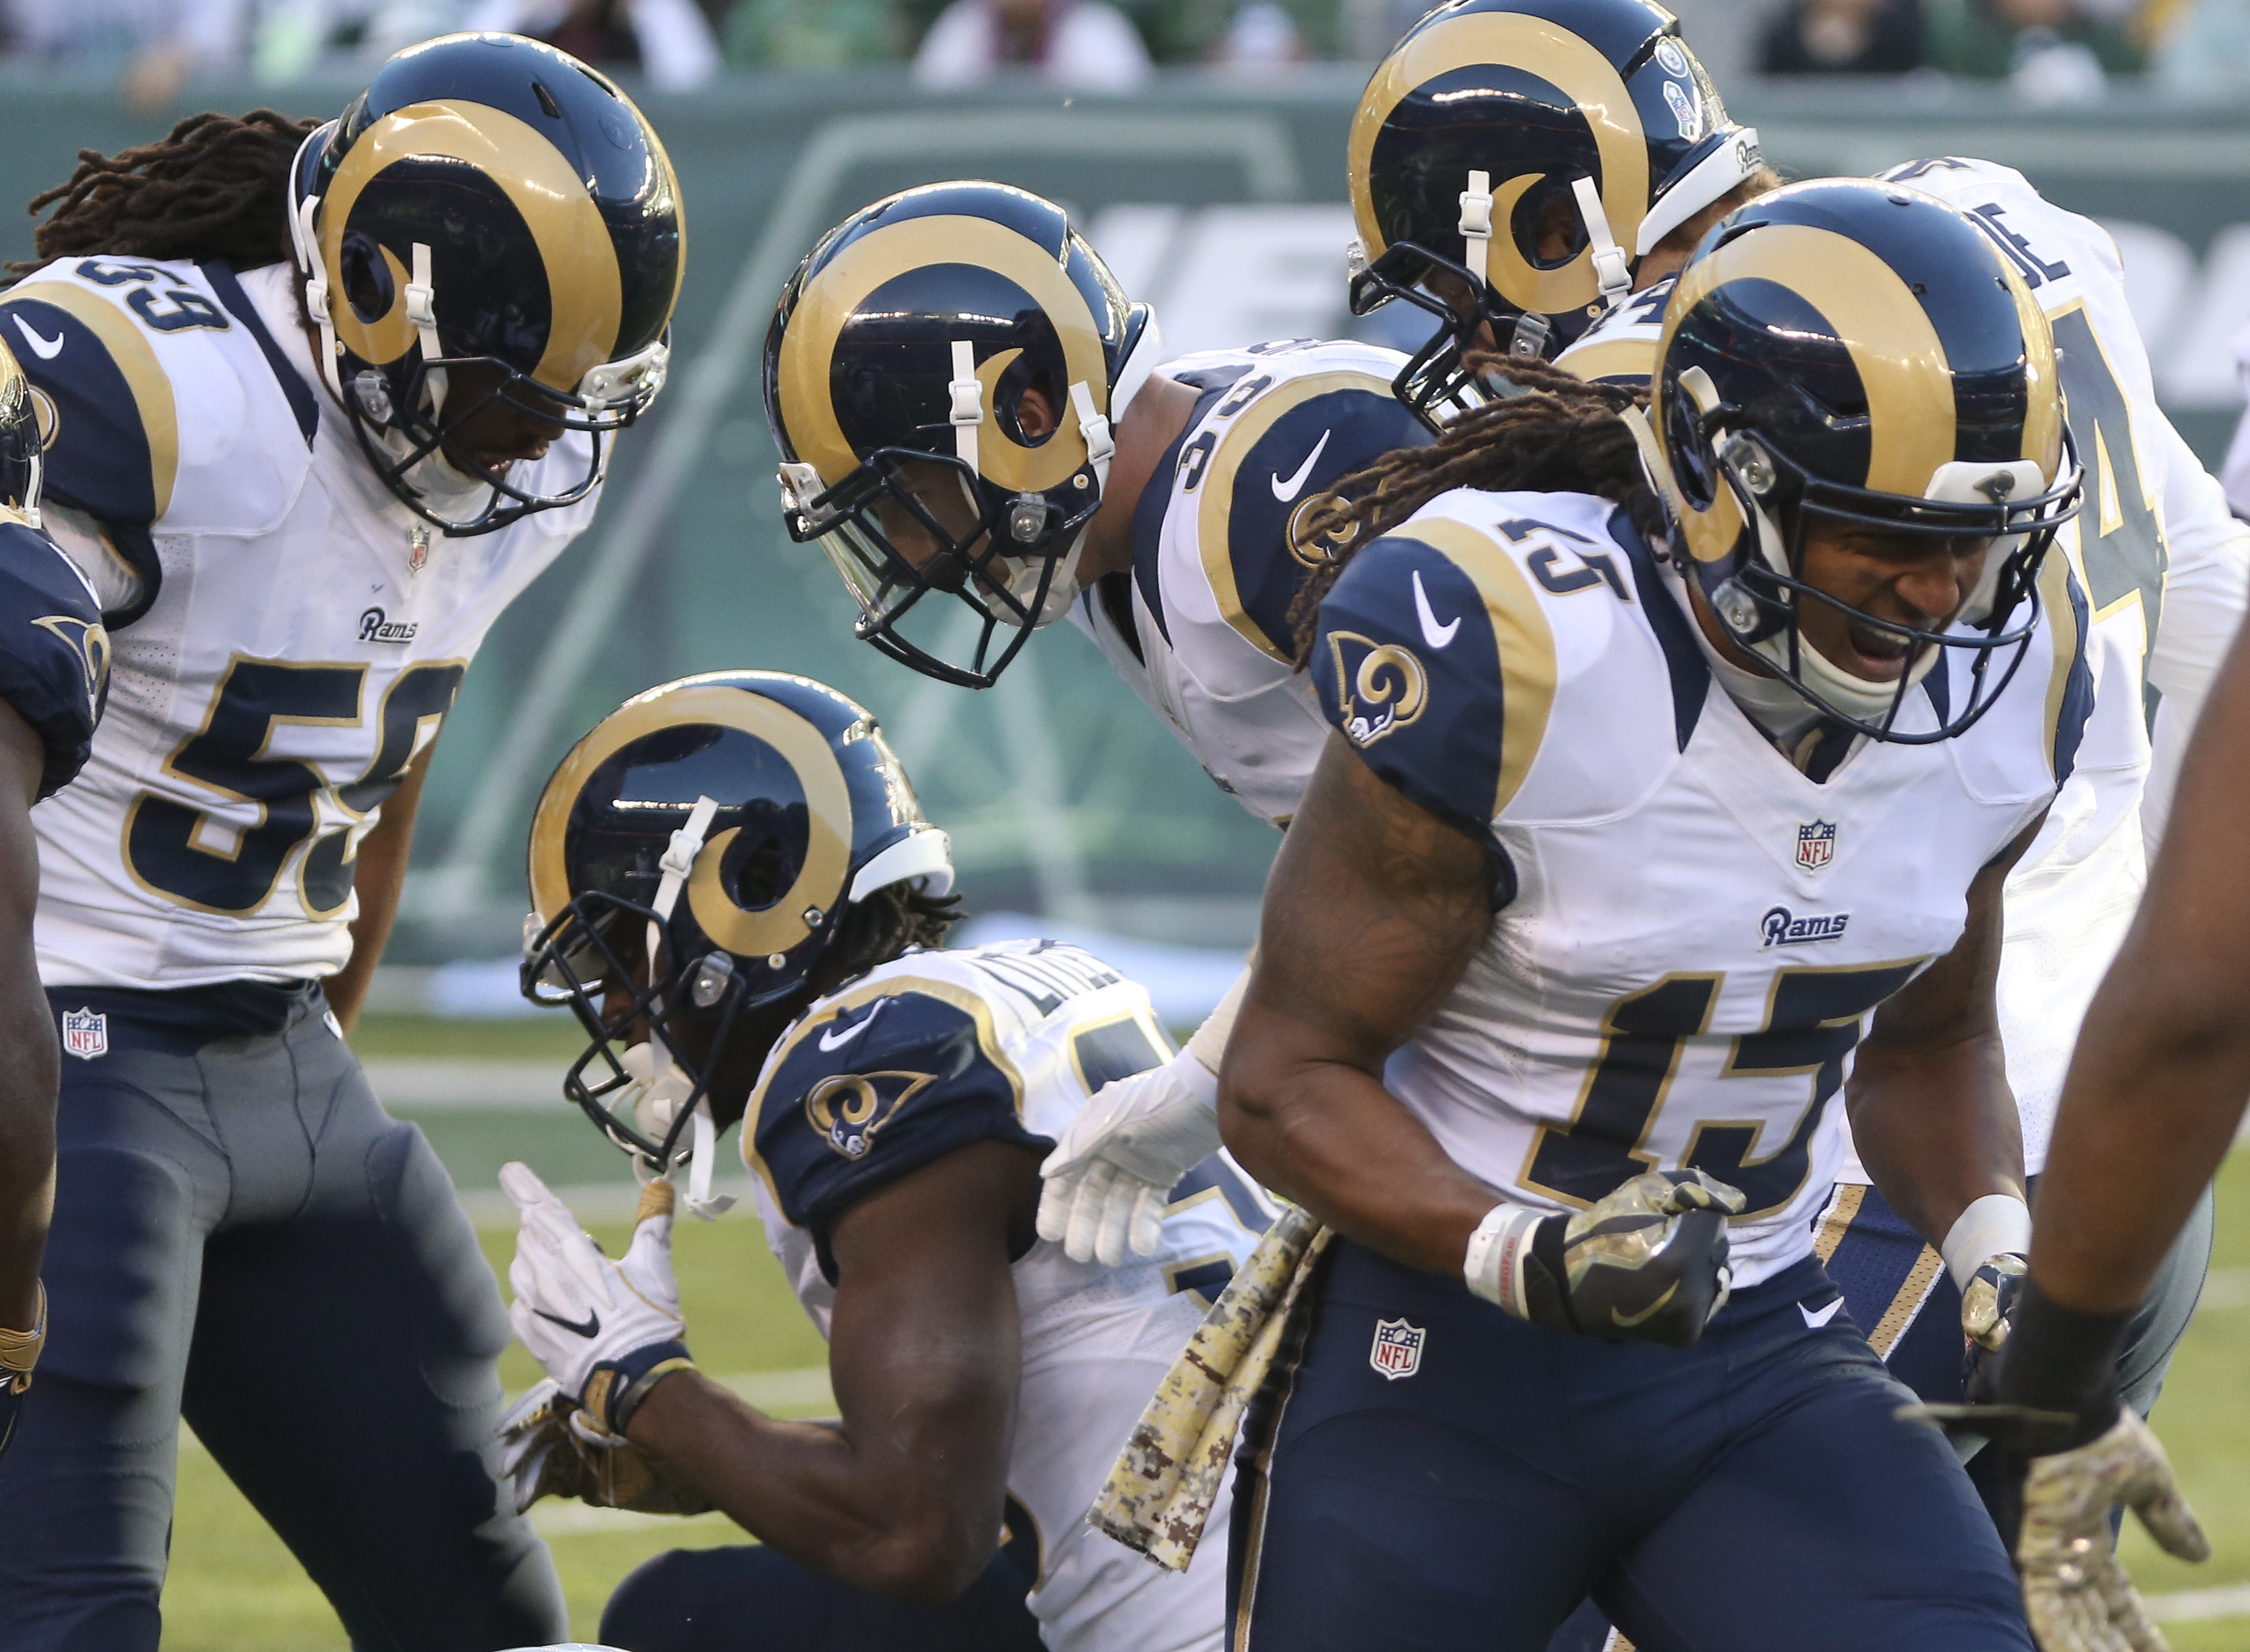 The Los Angeles Rams celebrate after a defensive play against the New York Jets during the fourth quarter of an NFL football game, Sunday, Nov. 13, 2016, in East Rutherford, N.J. (AP Photo/Seth Wenig)